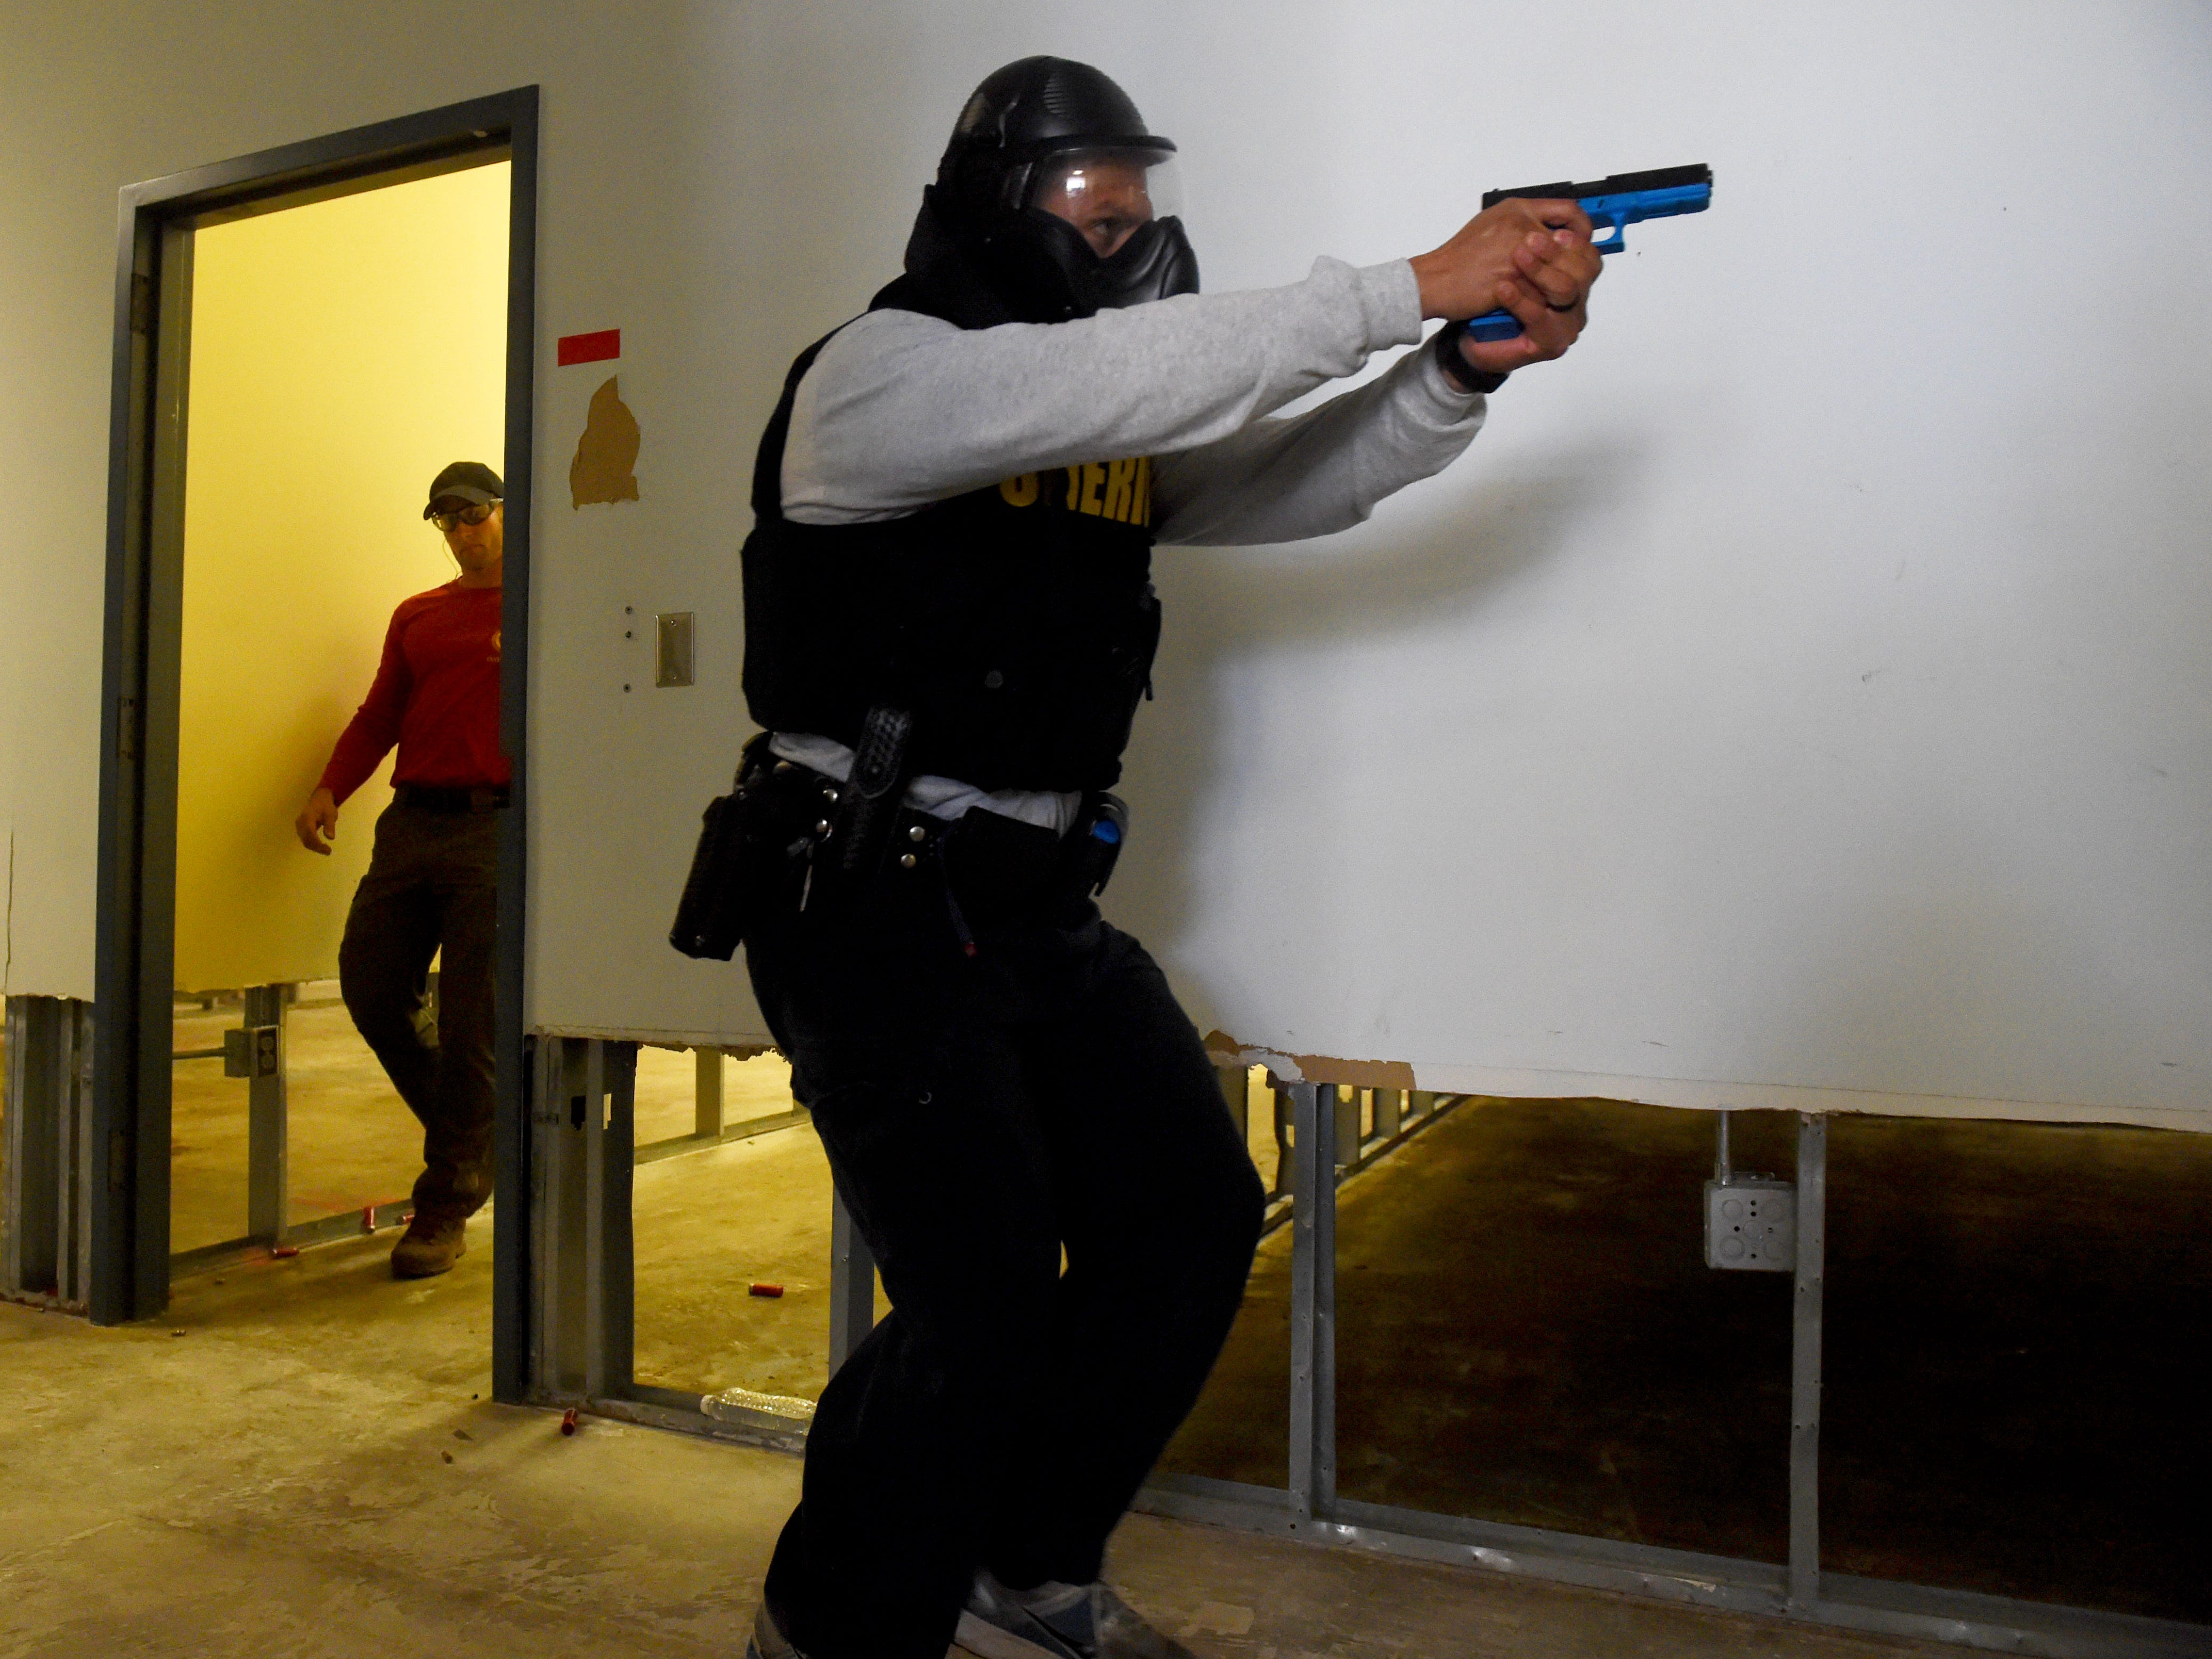 """A St. Lucie County Sheriff school resource deputy makes his way down the hallway of the Orange Blossom Business Center on Monday, March 19, 2018 during an active shooter training exercise in Fort Pierce. """"I'm committed to this, the command members are committed this, our training members are committed to this, that our first responders know how to react and respond to an active shooter,"""" said St. Lucie County Sheriff Ken Mascara. """"We're putting the training together so that it's a reflex, they don't even have to think about it. They know that when they hear the gunshots that their mission is to direct themselves toward the shooting, identify the shooter and neutralize the shooter."""" Twenty-three school resource deputies participated in the training along with students from Fort Pierce Central High School's Community Emergency Response Team."""